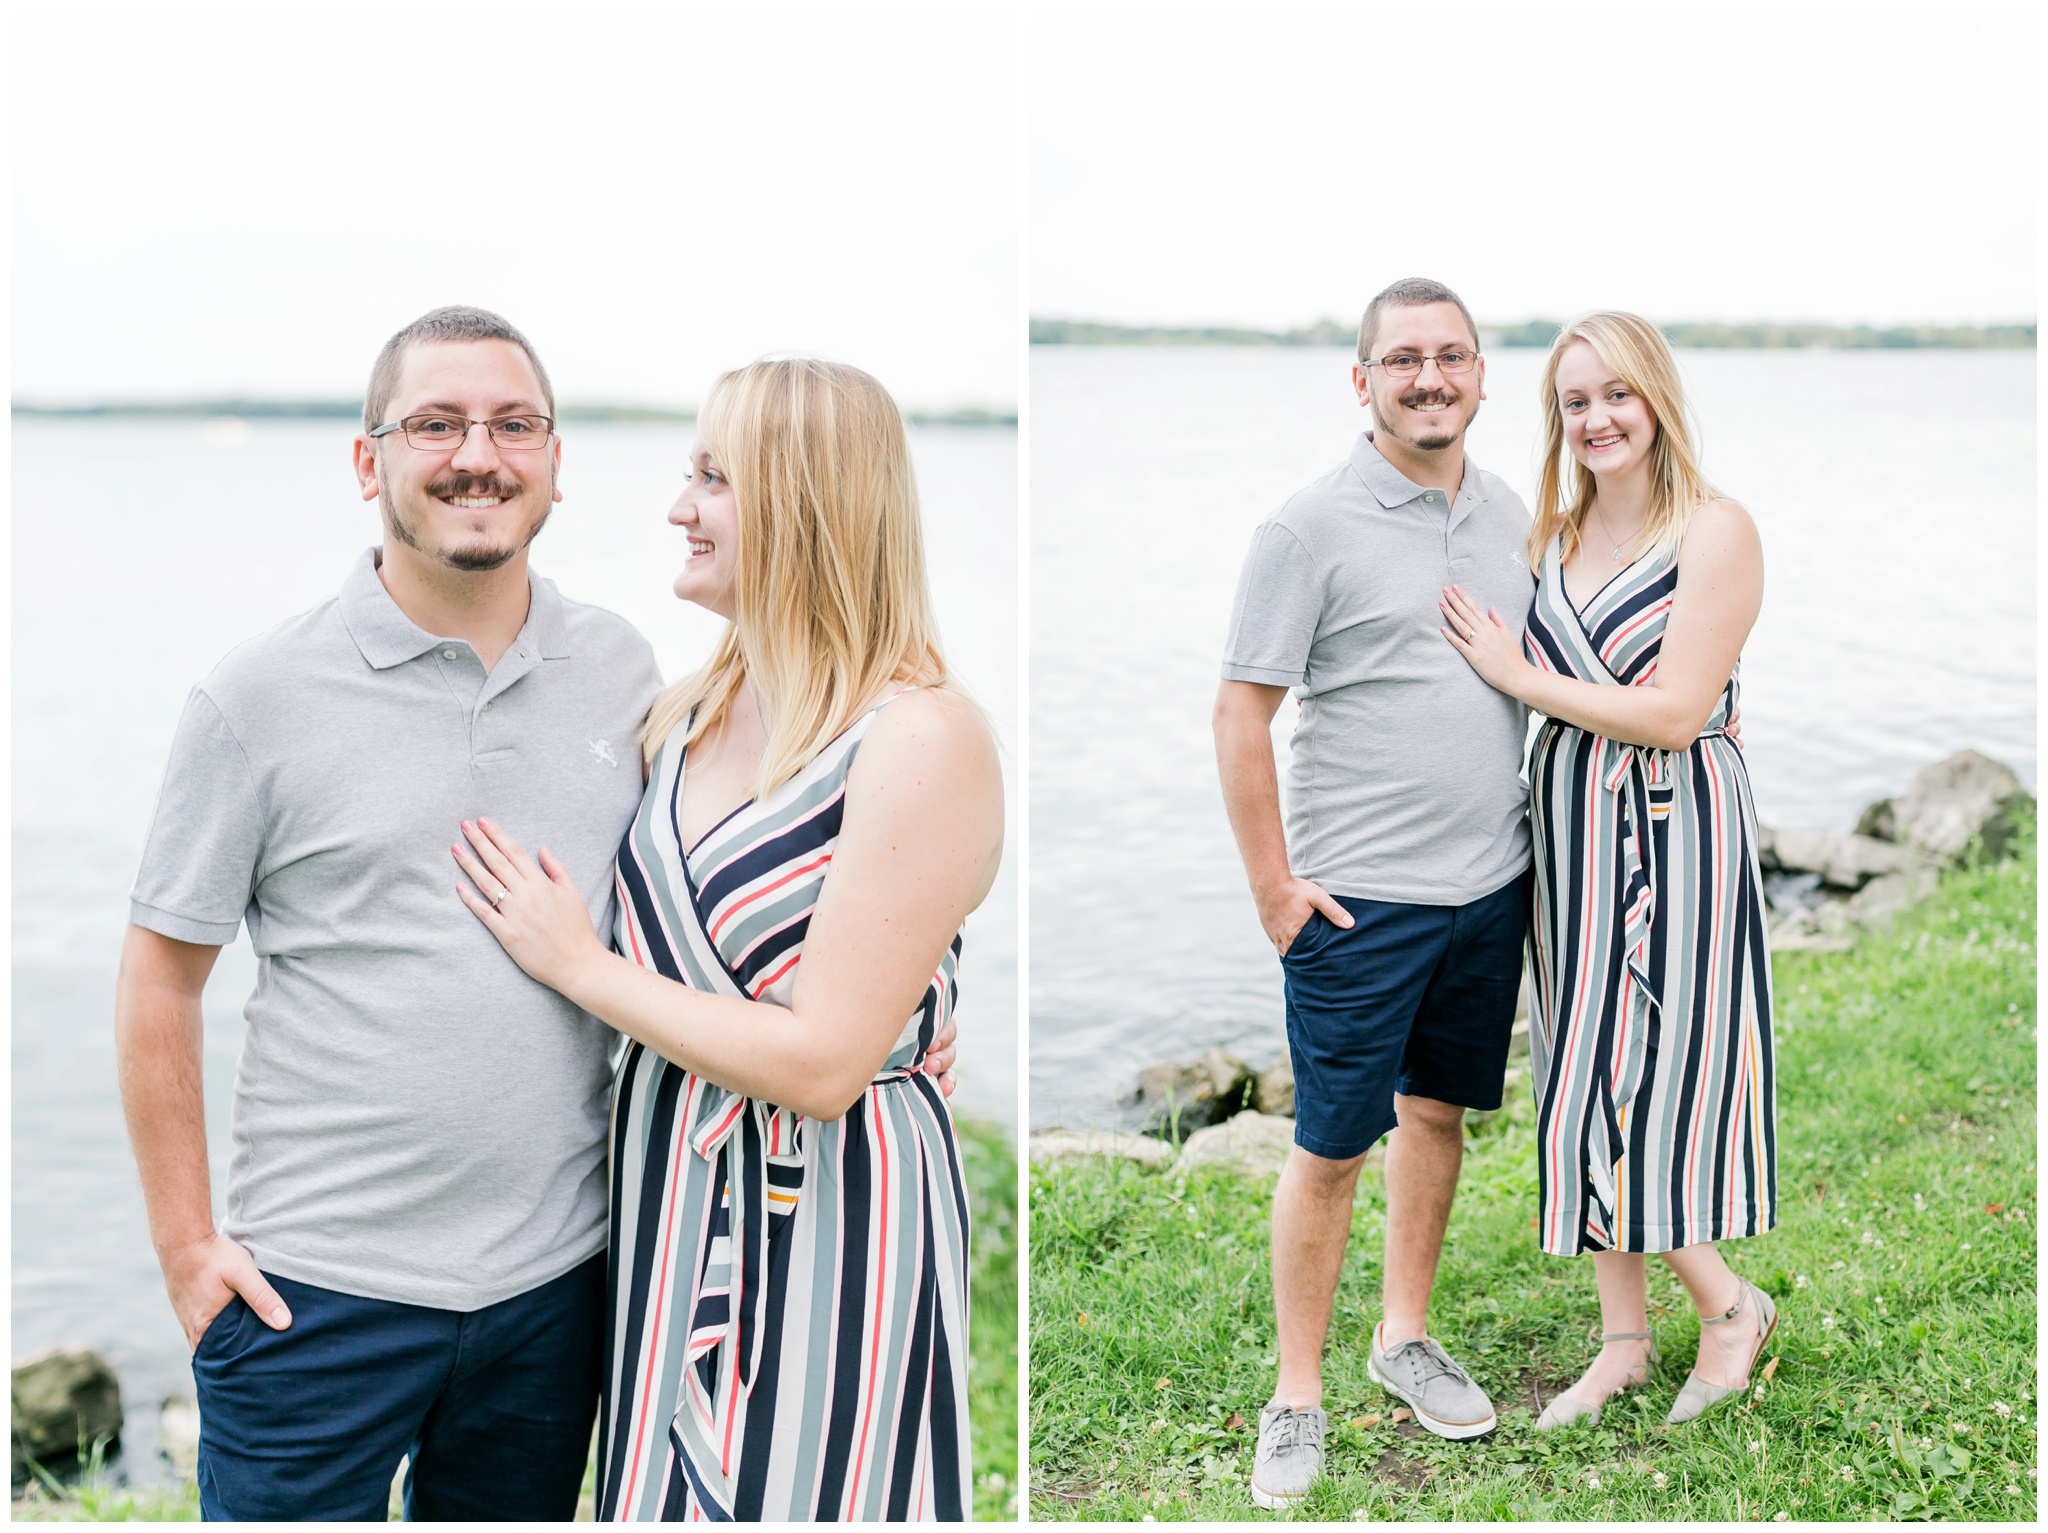 Downtown_madison_wisconsin_engagement_session_4204.jpg